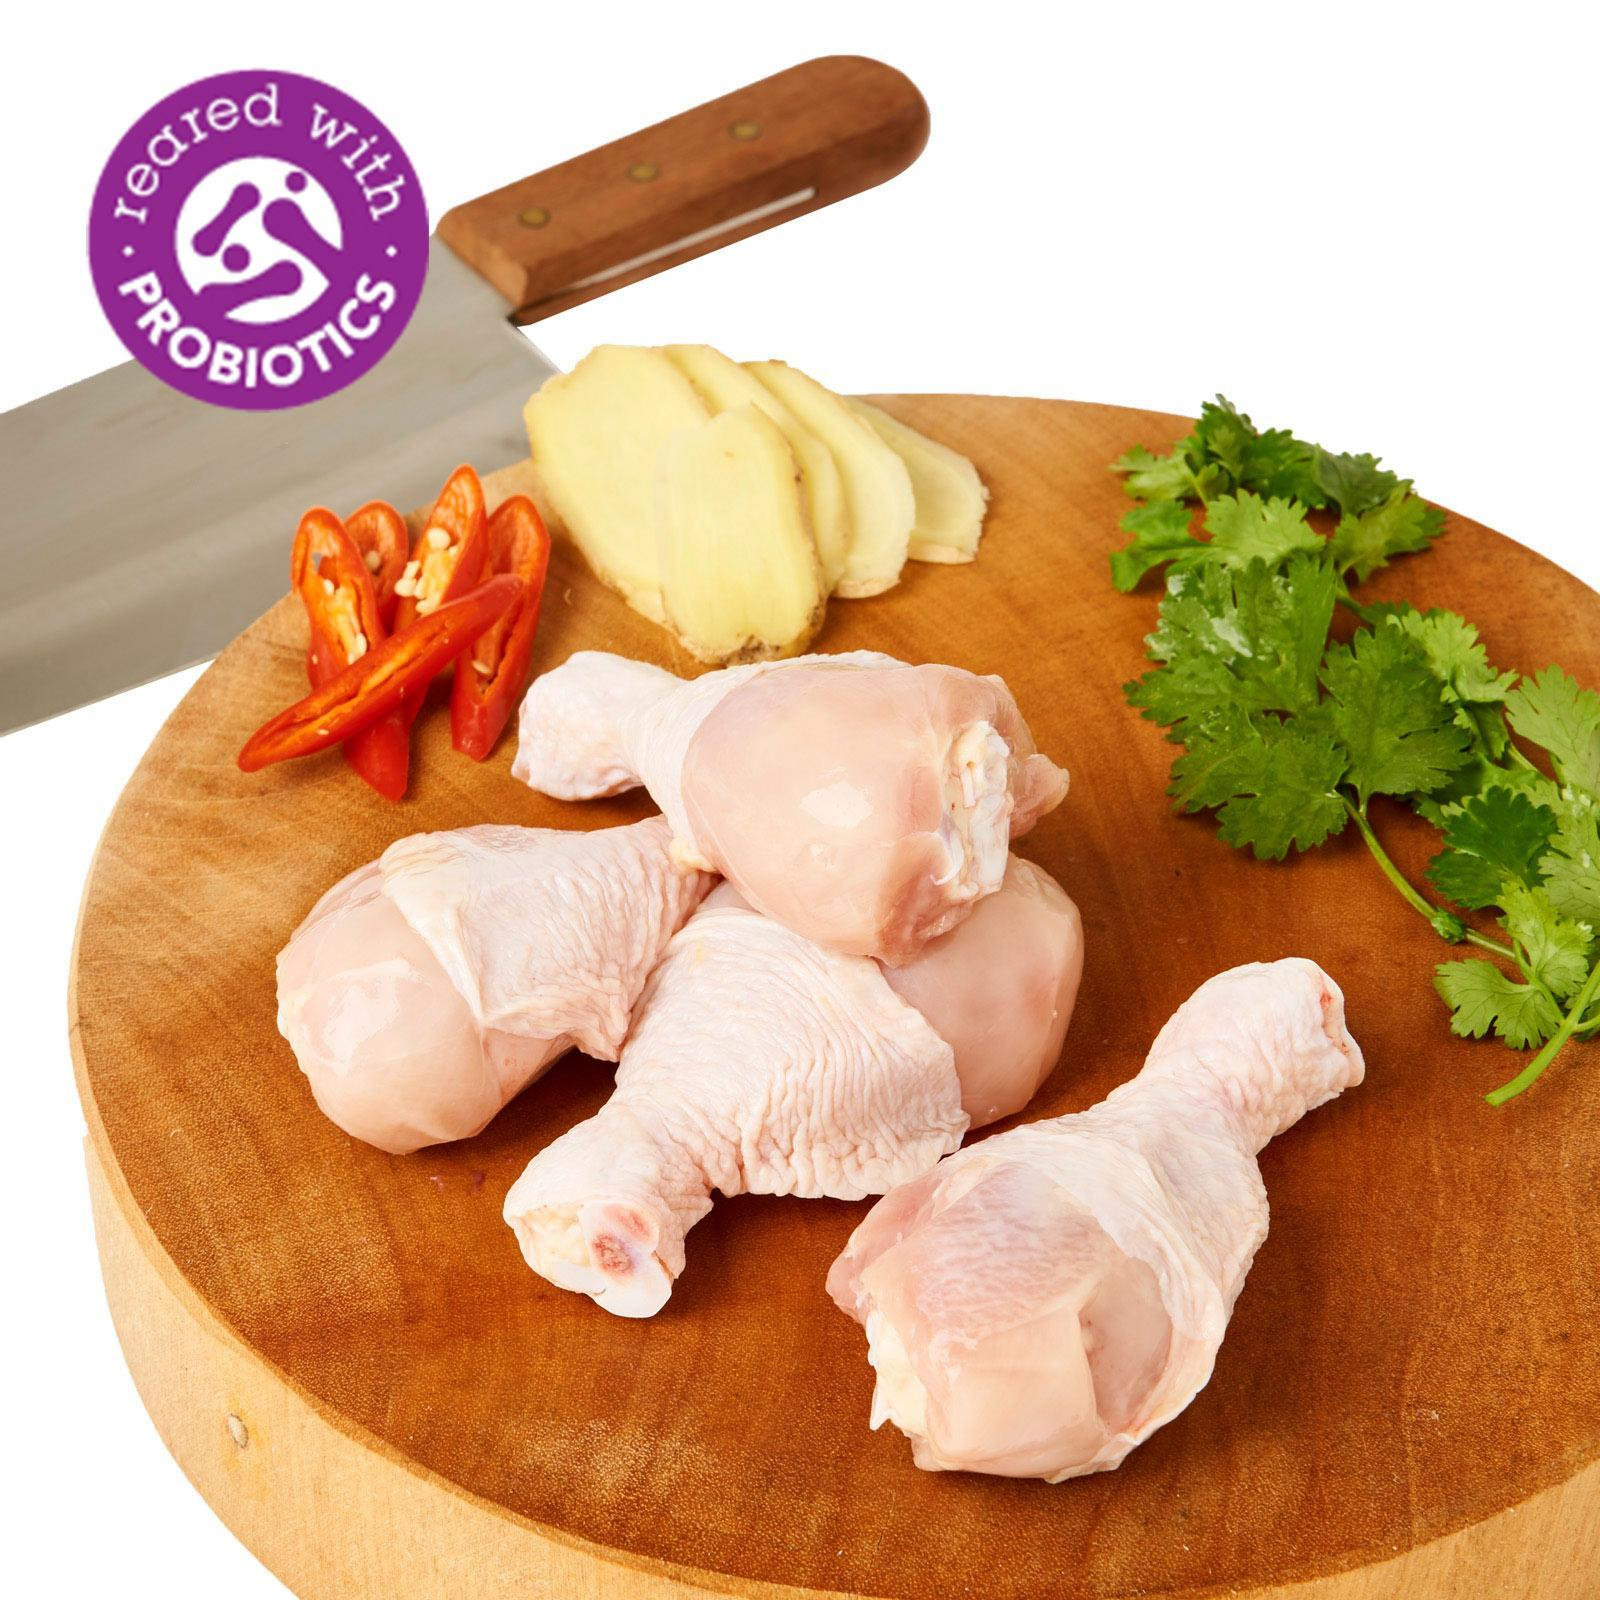 RedMart Fresh Chicken Drumstick - Reared With Probiotic